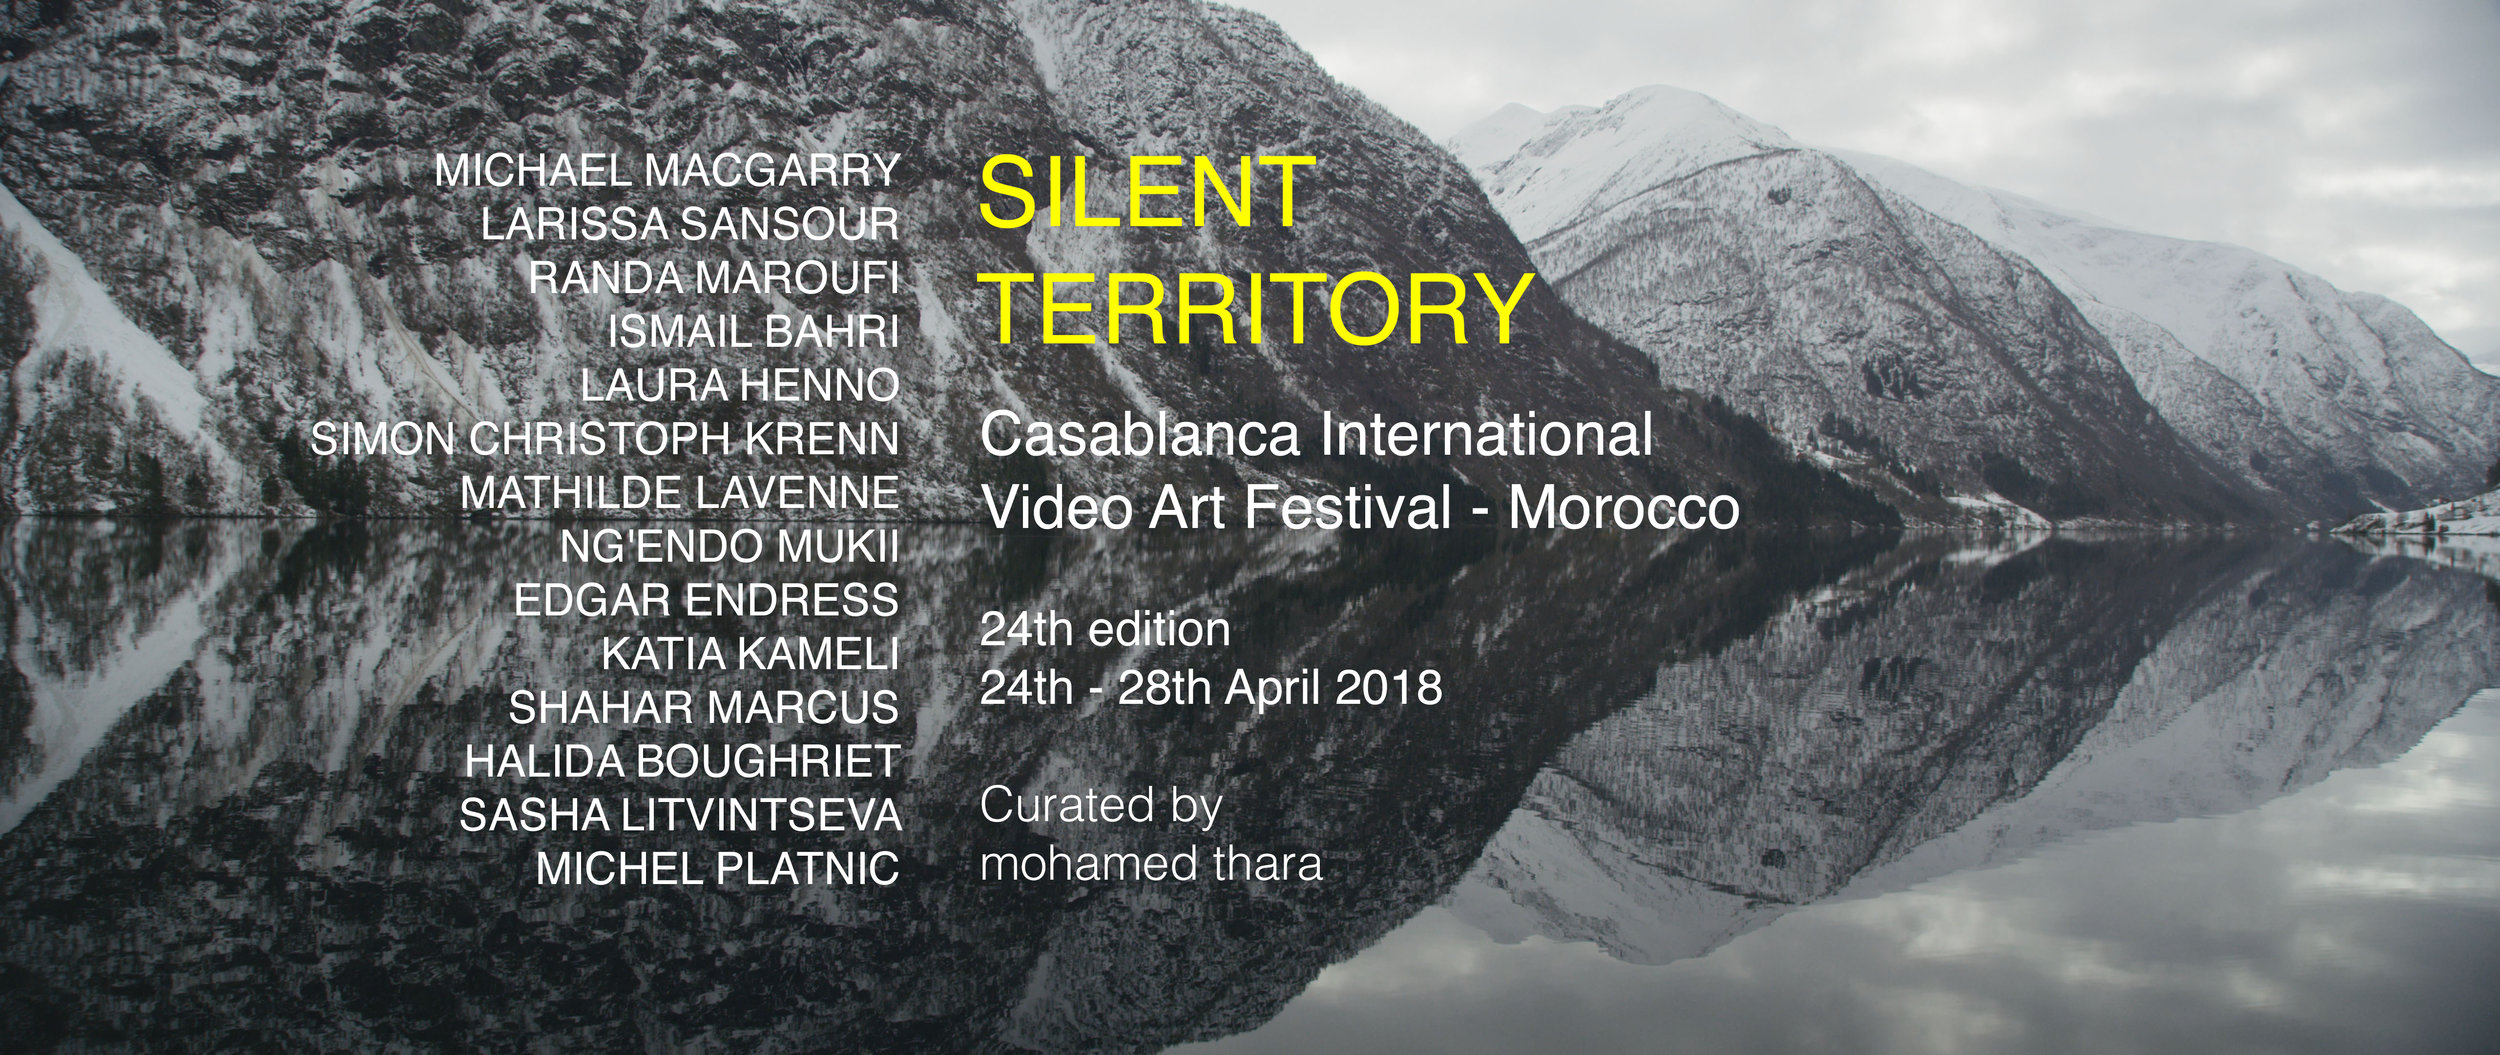 "Silent Territory  - International Selection Casablanca Video Art Festival, 2018, curated by Mohamed Thara.  Video art can be apprehended as a territory in constant redefinition. The international selection of the FIAV 2018 ""Silent Territories"" questions the boundary (the path that borders between two borders), the zone, the interval, the boundary, the route, the dam, the end, the point of separation and the lines demarcation between multicultural societies. The videos of the selection pose several questions: but what is a territory? Is it unlimited like the horizon? It appears however as a terminal not to cross here and now. Every territory is a frontier, it builds and deconstructs, between line of flight, crack, fracture, edge, it creates margin, fence, zone, ghetto. How to go from here to there? Between there and here? Between the outside and the inside? The danger is indeed in the heart of the crossing. It's about seeing, hearing, thinking, writing and reading ""between"" the edges or banks of this ""nowhere"" hardly habitable. How are the links between video art and territories woven and unfolded? This set of questions will be answered by the thirteen invited videographers for the international selection ""Silent Territories"", through a set of thirteen video works. As a place of conquest, this selection also questions the question of the transmission and passage from one place to another where video comes to the aid of the abandoned territories. A reflection on the status of video art as a recording of contradictory territories.  It is a selection of unifying works with a video art education system, which aims to raise awareness and initiate to reading and artistic practice, by crossing the different ways of ""making video To look at it and to state it. This is to promote the development of an artistic and cultural policy within the city of Casablanca, to create a common space for exchange around video art. The practice of videographers invited for this selection through their projects, testifies that the territory can be a neutral place, a ""non-place"", an in-between, with a specificity of being neither one nor the other neither this edge nor this edge. He walks between two edges, between two houses, between two domains that can never join. A person's space - no man's land - the ""same"" neutral of the boundary, that of any boundary, any surface, the active tracing of difference and opposition.  It will be in this international selection to create ""thresholds"", to develop interstices to explore conjunctions and disjunctions related to these issues of borders and territories, echoing the remarks of Paul Ardenne, Pascal Beausse and Laurent Goumarre in their common work Art as experience: ""Artists are today smugglers. By recycling images, real or fictional, what they propose, they are no longer works, nor even objects of art, but processes, propositions of situation to experiment in common. ""   Contemporary And  Magazine  C& /  26 avril 2018 :  Silent Territory : 24th Edition Casablanca International Video Art Festival Morocco :  https://www.contemporaryand.com/fr/exhibition/silent-territory-24th-edition-casablanca-international-video-art-festival-morocco/"